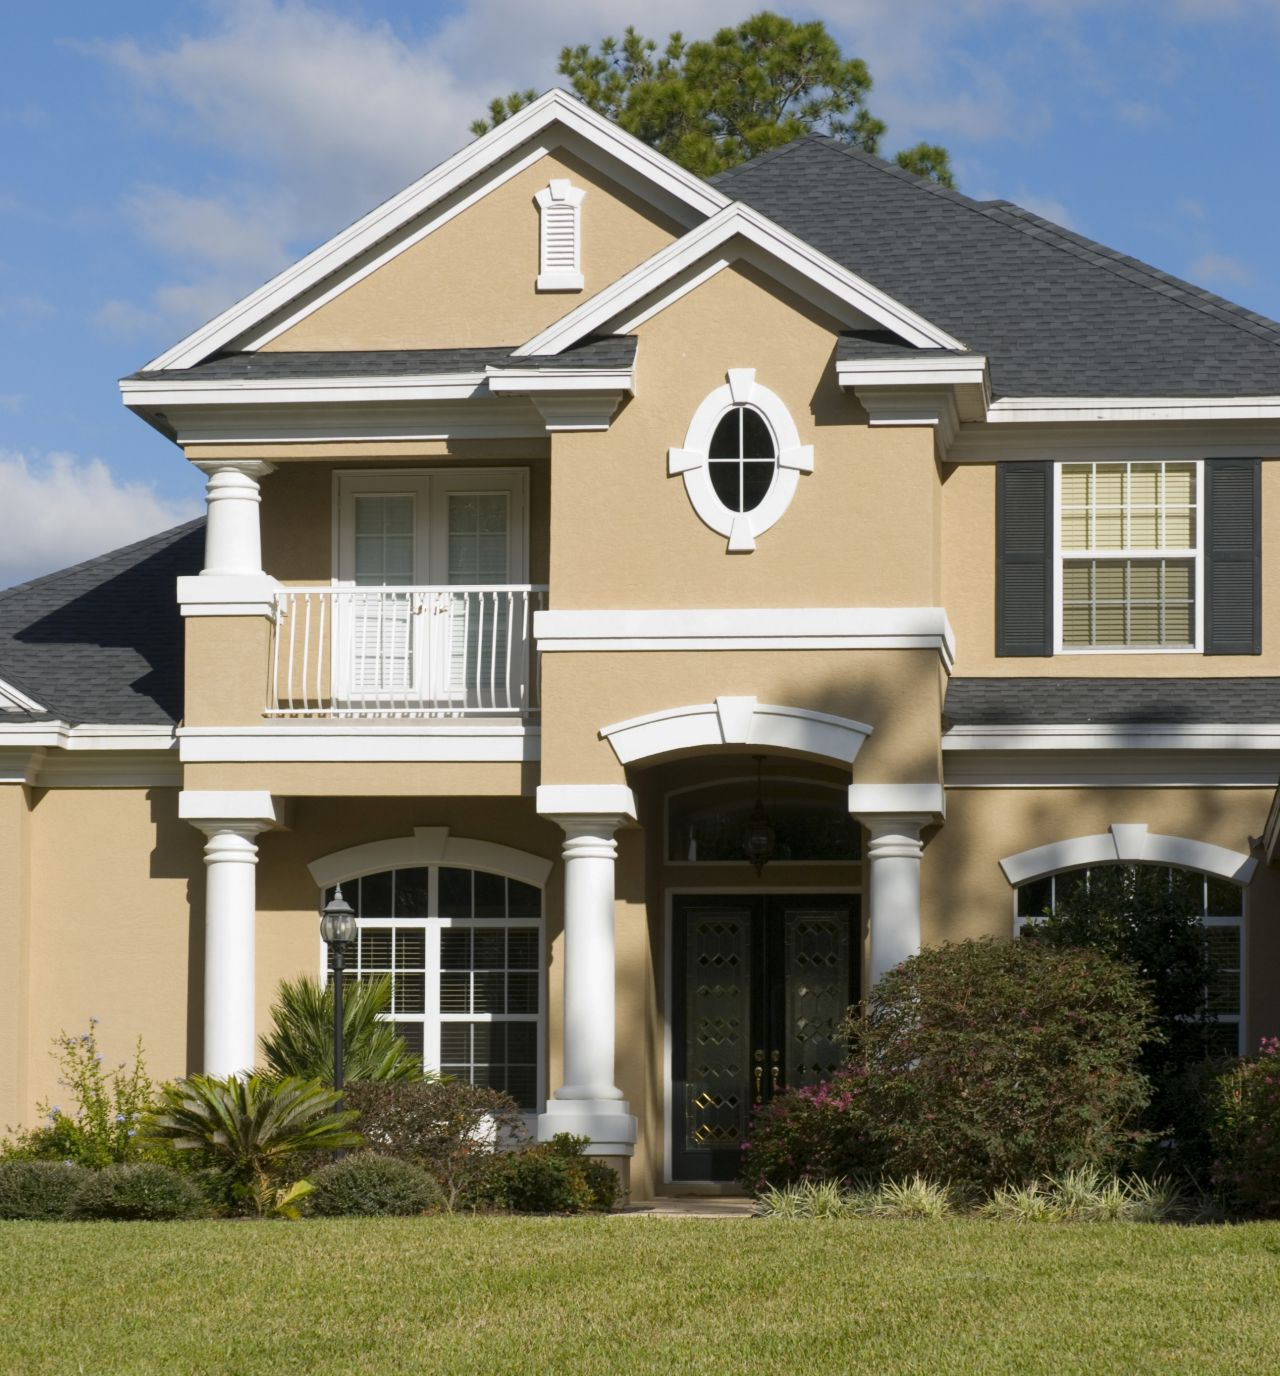 Home Color Ideas Exterior: Exterior Paint Schemes And Consider Your Surroundings